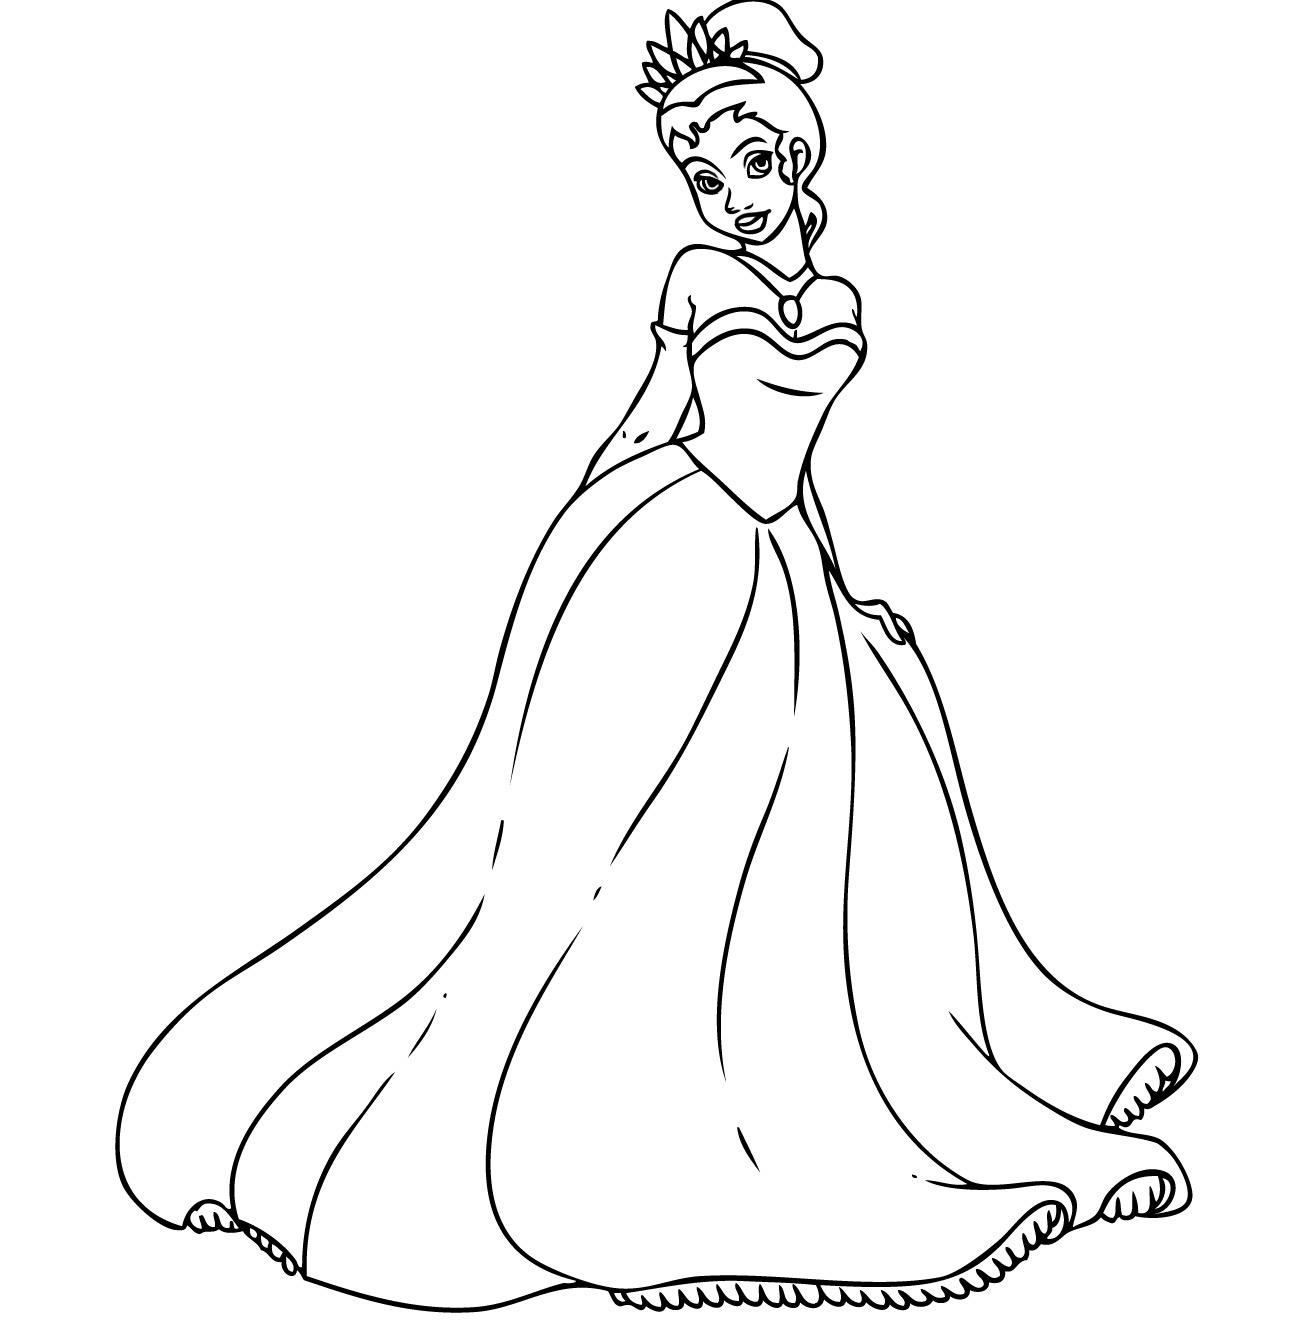 Tiana Coloring Pages Glamorous Free Printable Princess Tiana Coloring Pages For Kids Decorating Inspiration